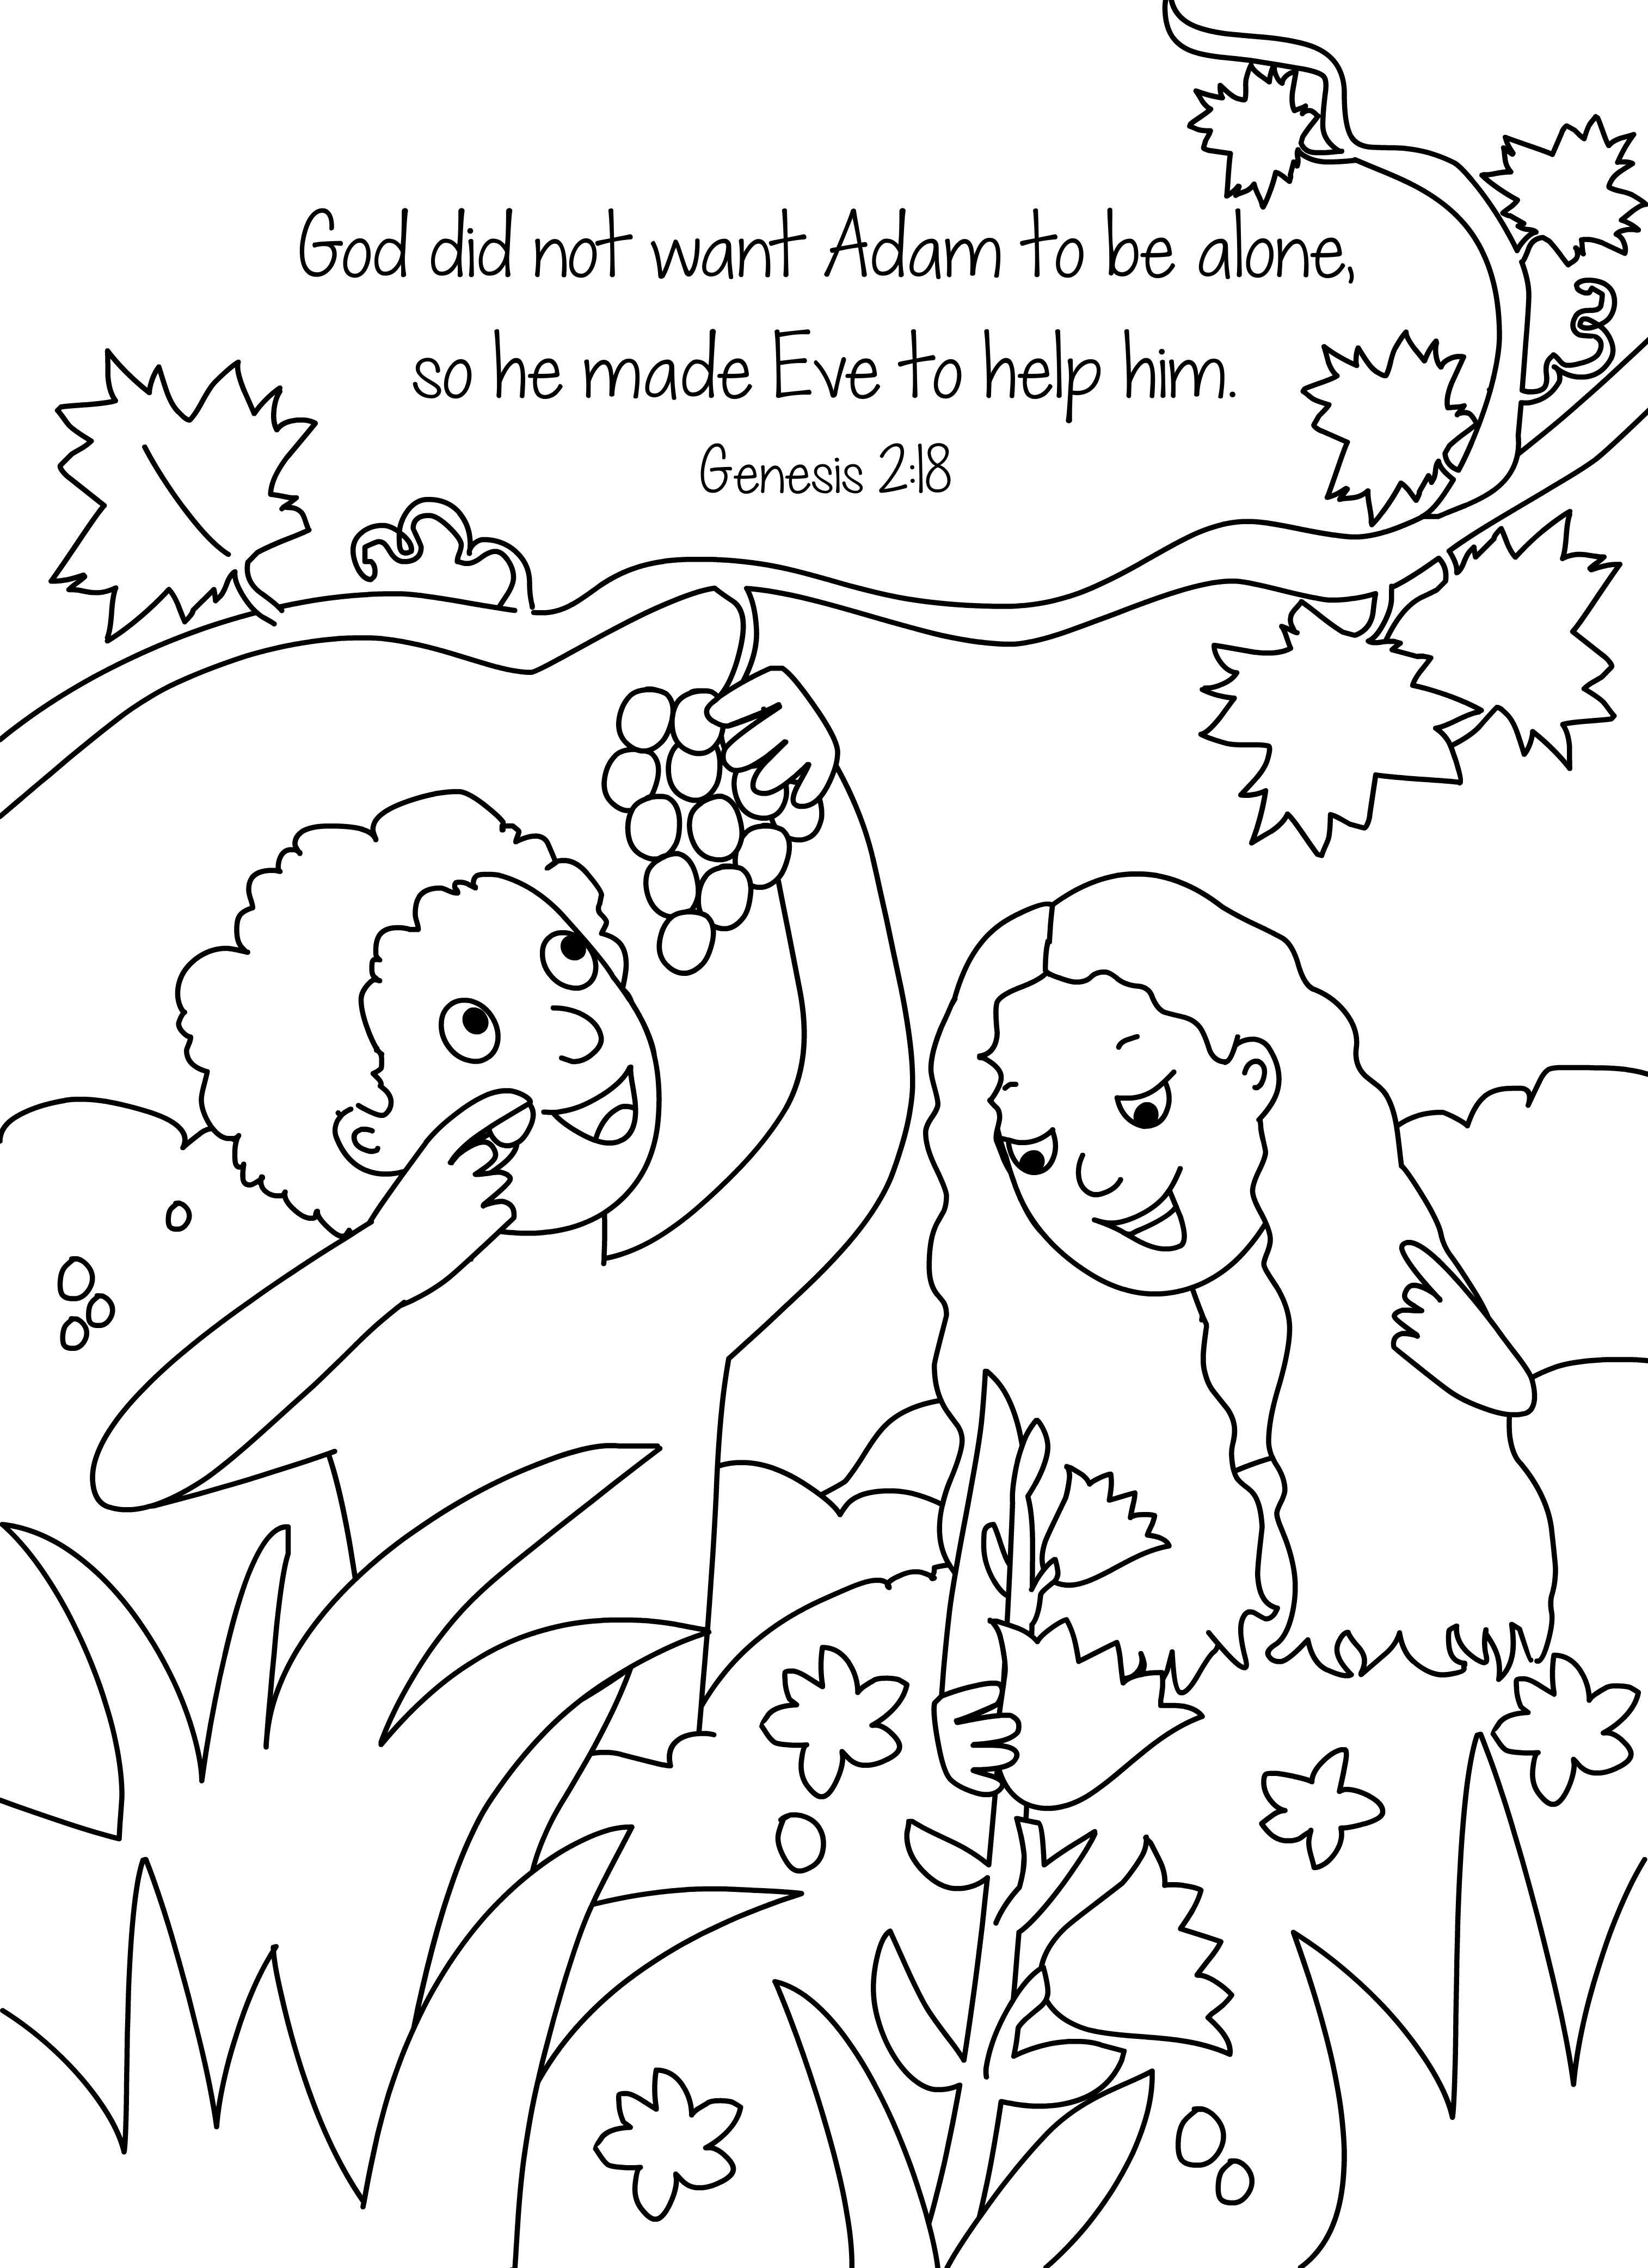 Diy Online Preschool Children S Videos By Cullen S Abc S Creation Coloring Pages Bible Coloring Pages Sunday School Coloring Pages